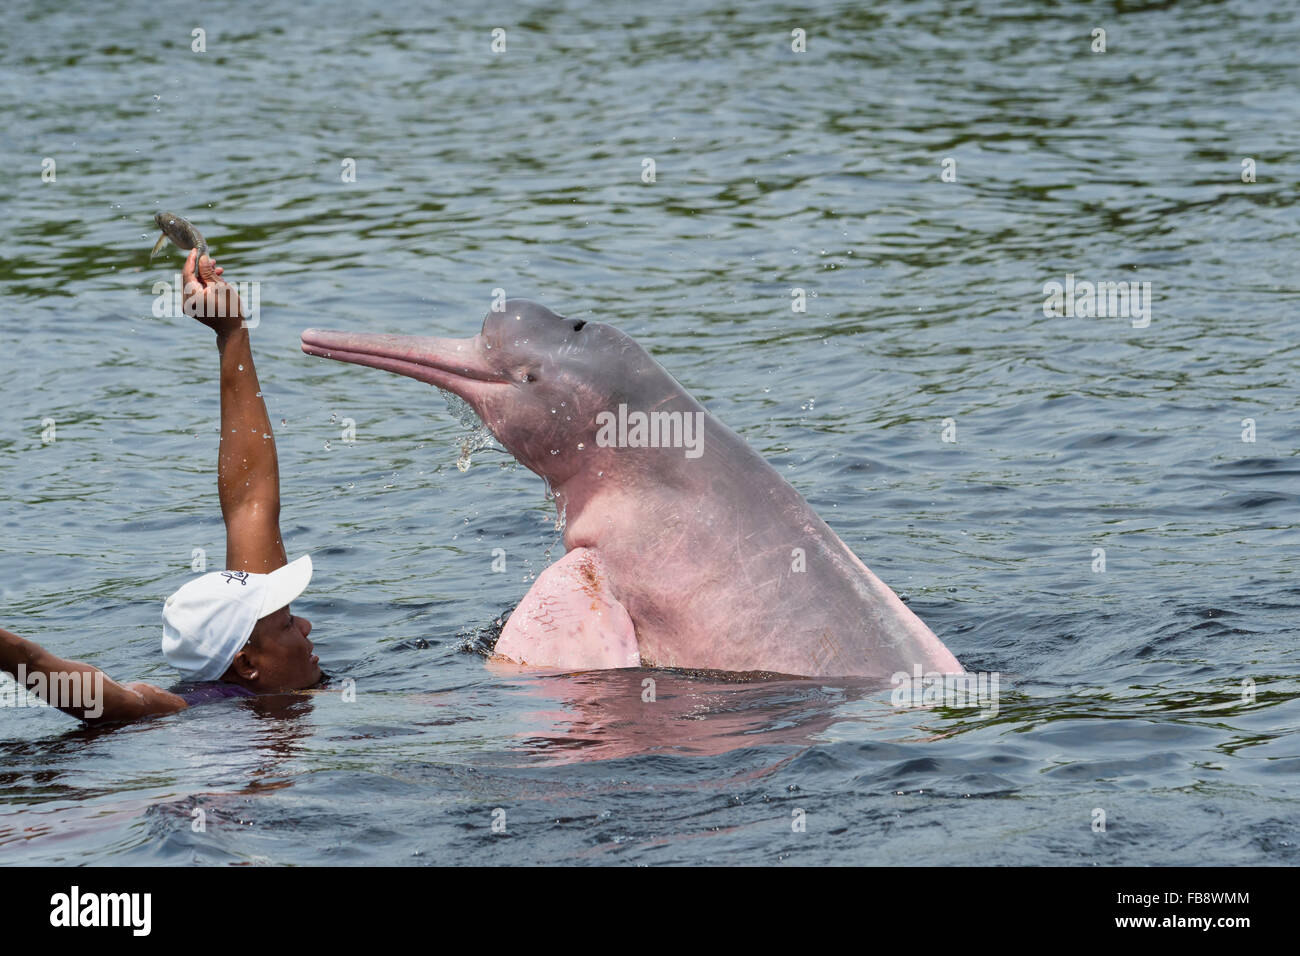 Amazon River Dolphin or Pink Amazon Dolphin (Inia geoffrensis) being fed by local villager, Rio Negro, Manaus, Brazil - Stock Image